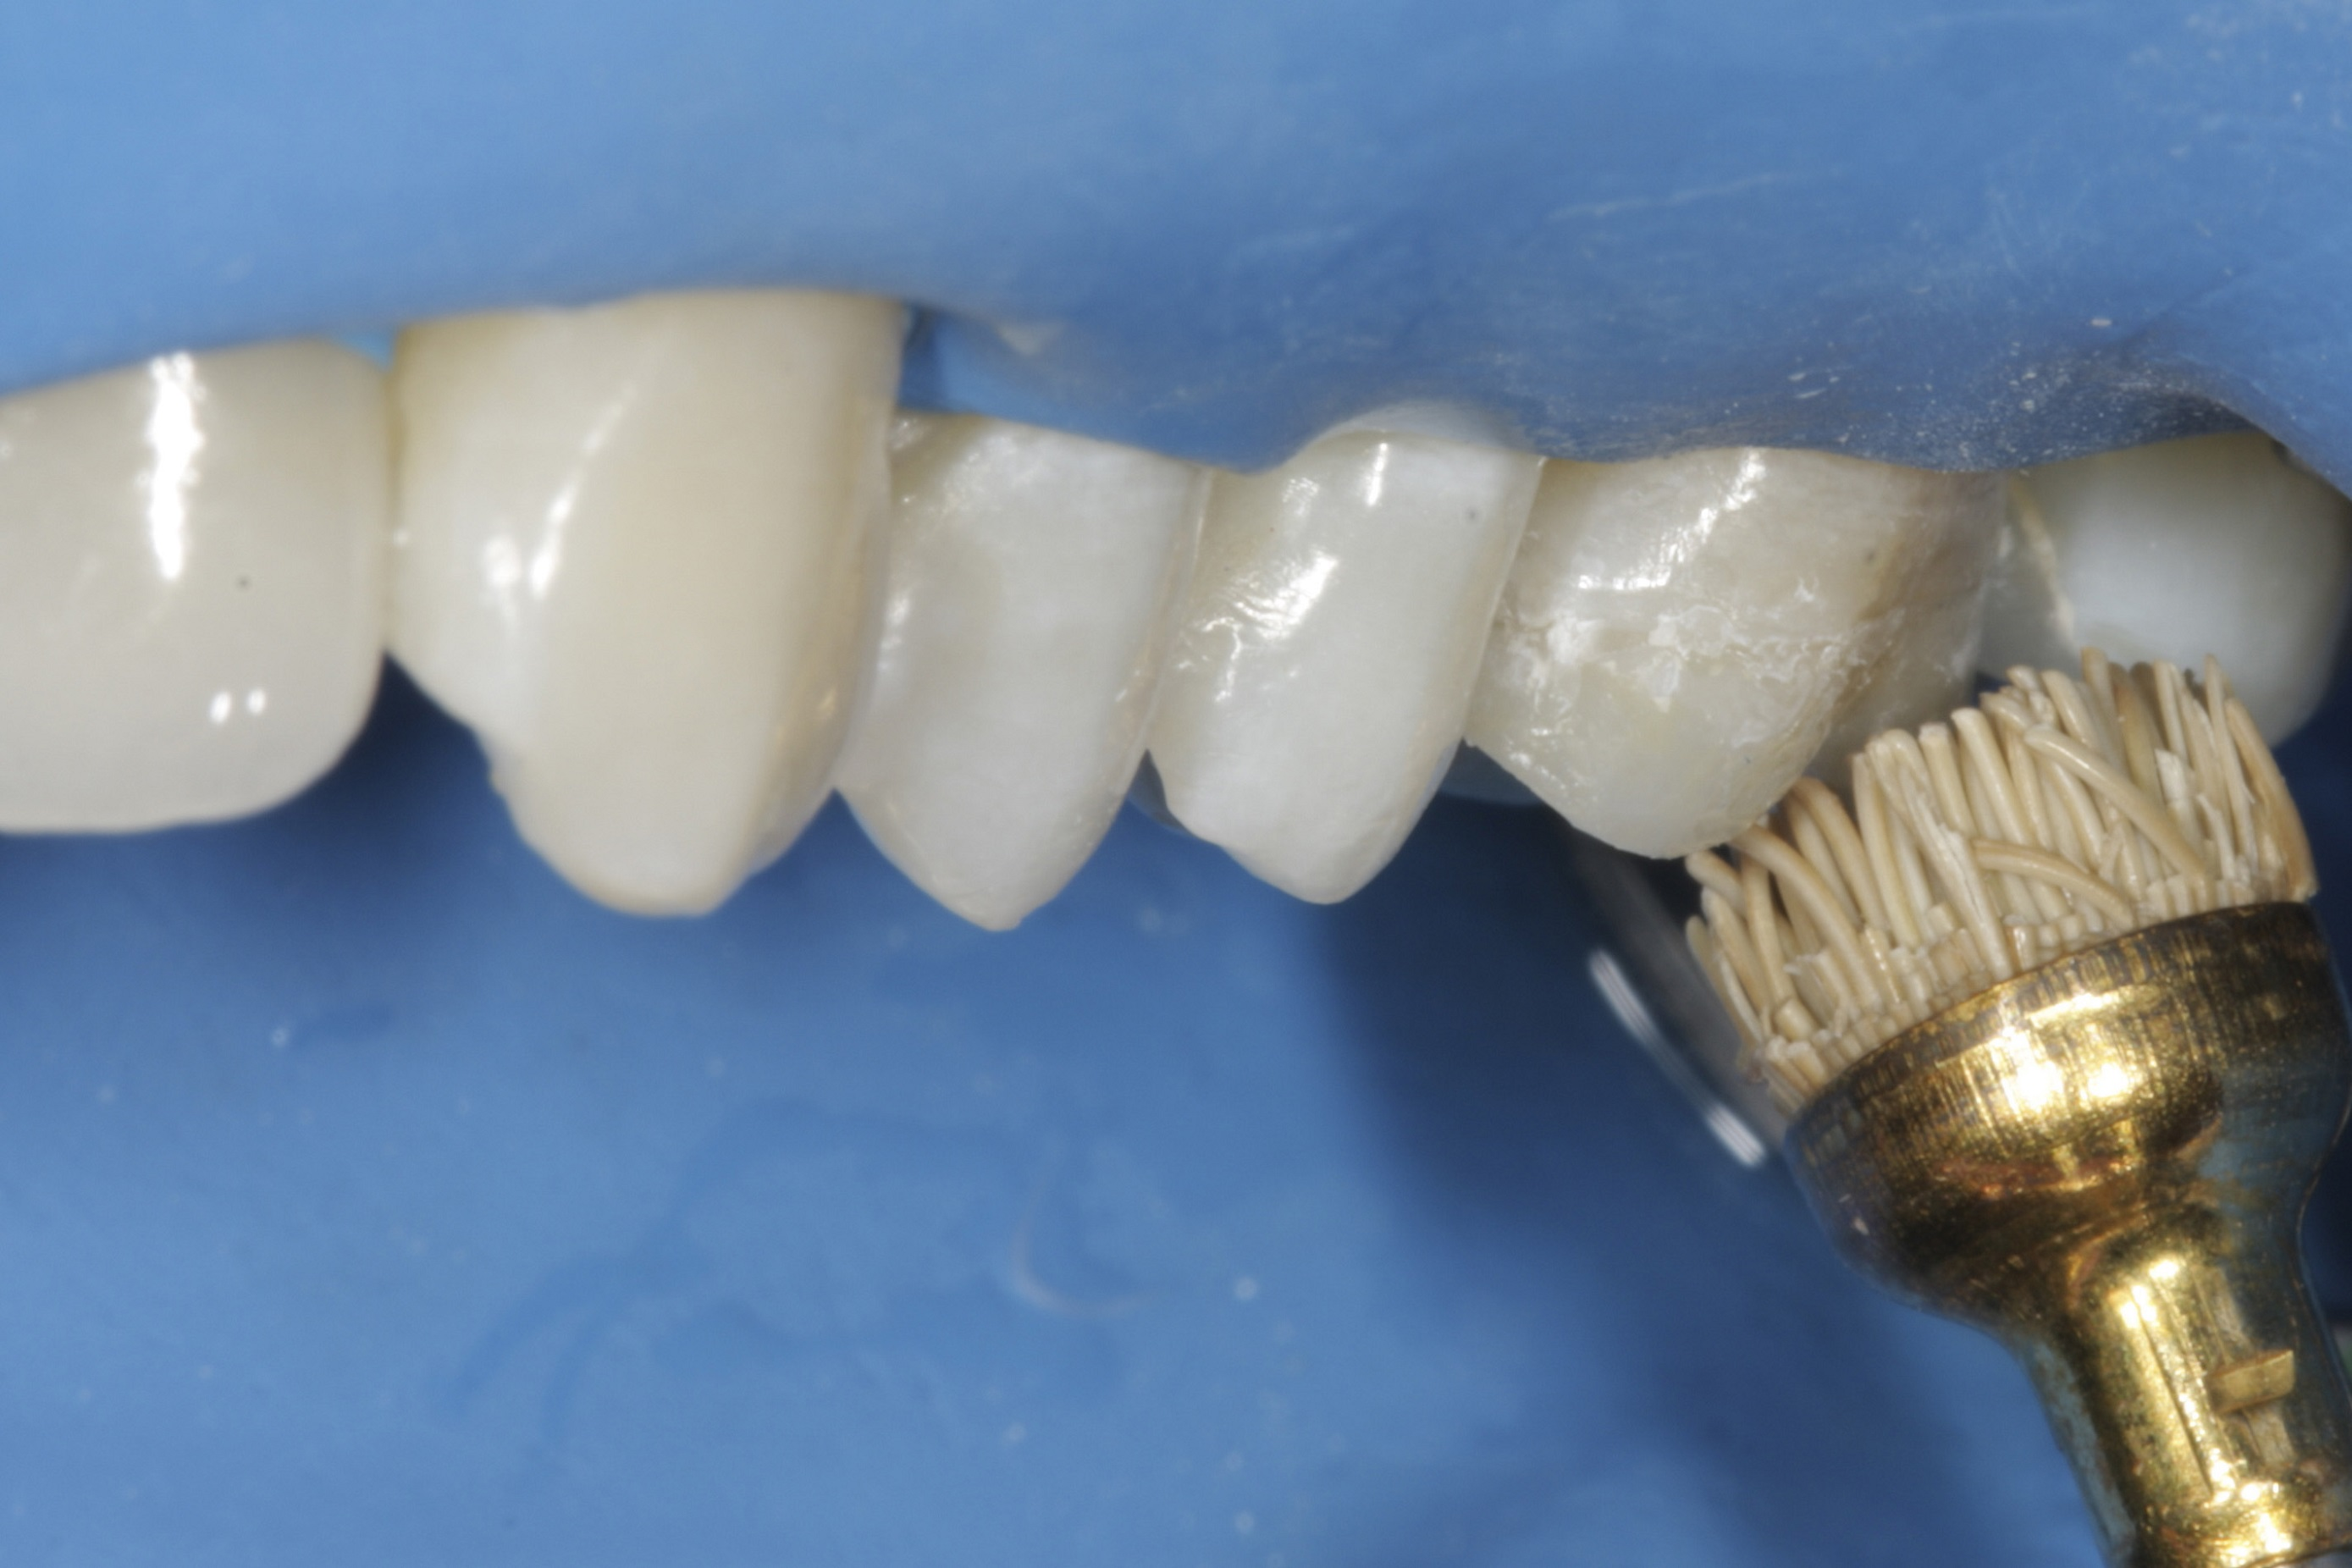 Restoration of teeth - methods. Treatment of canals